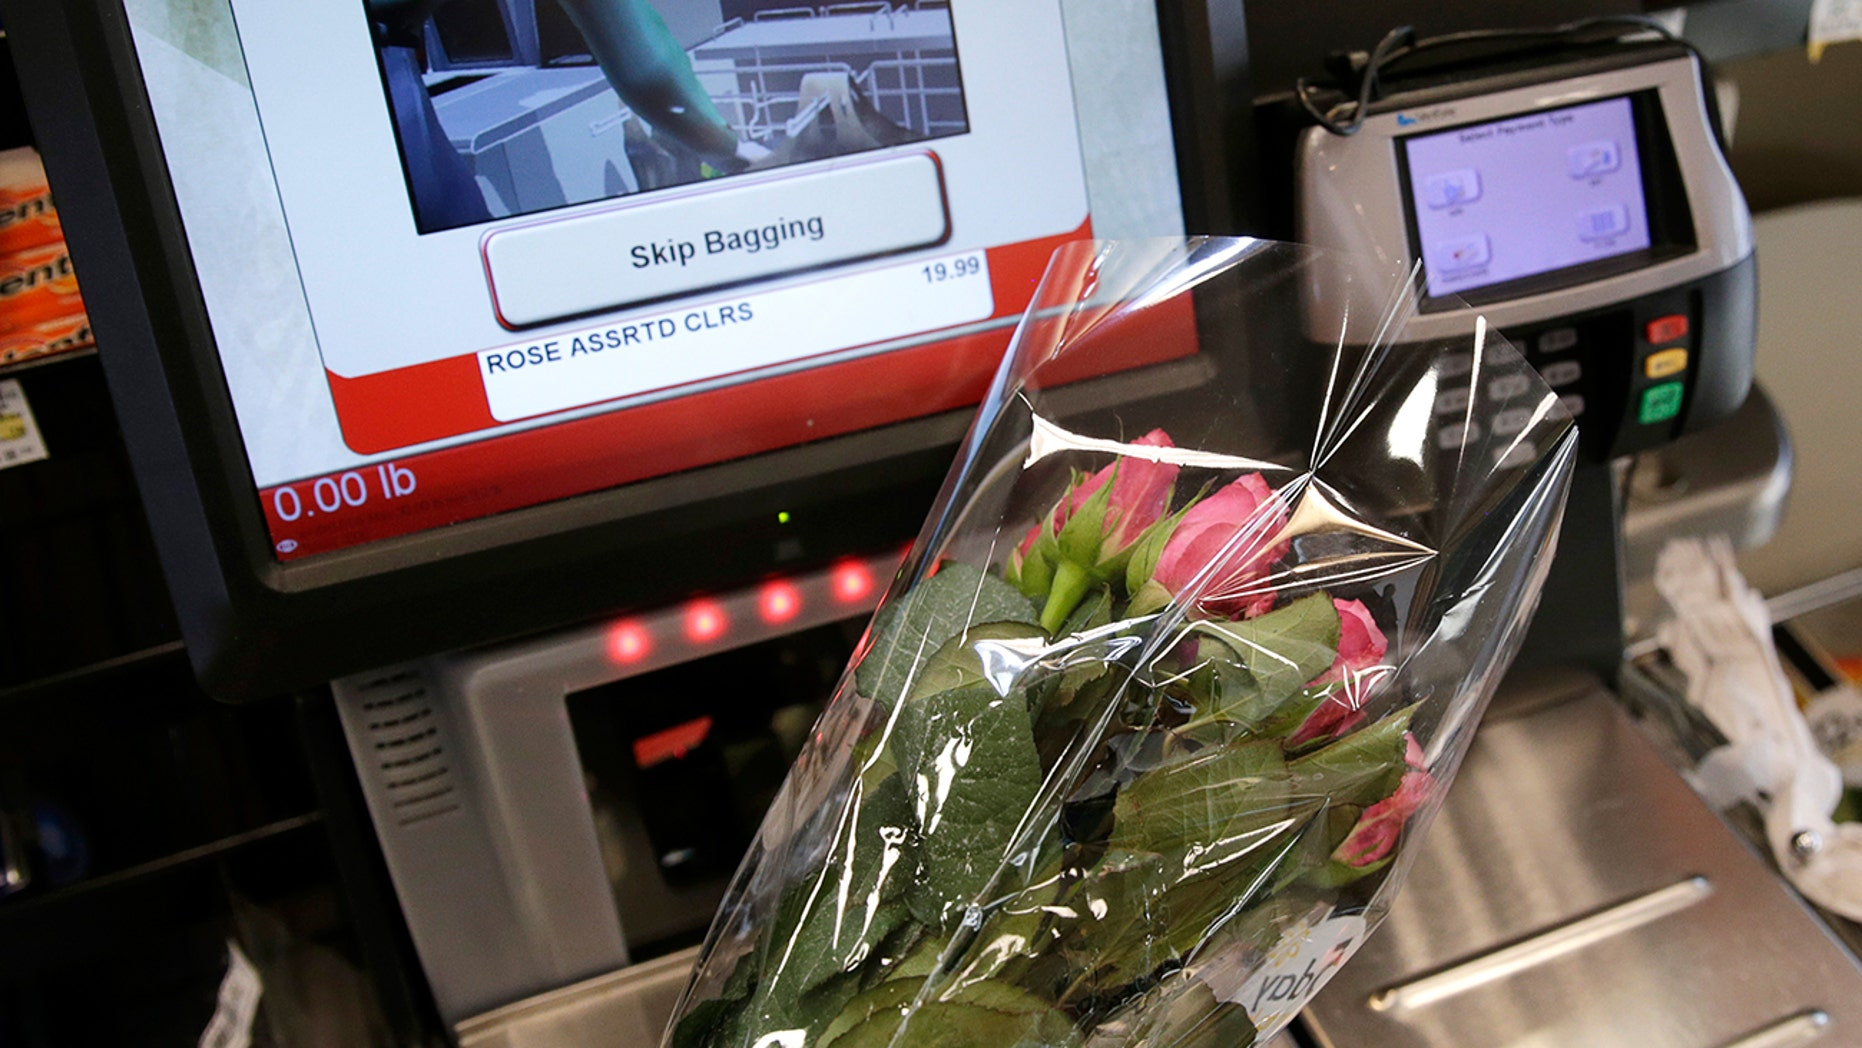 Flowers are scanned at a self check out station.